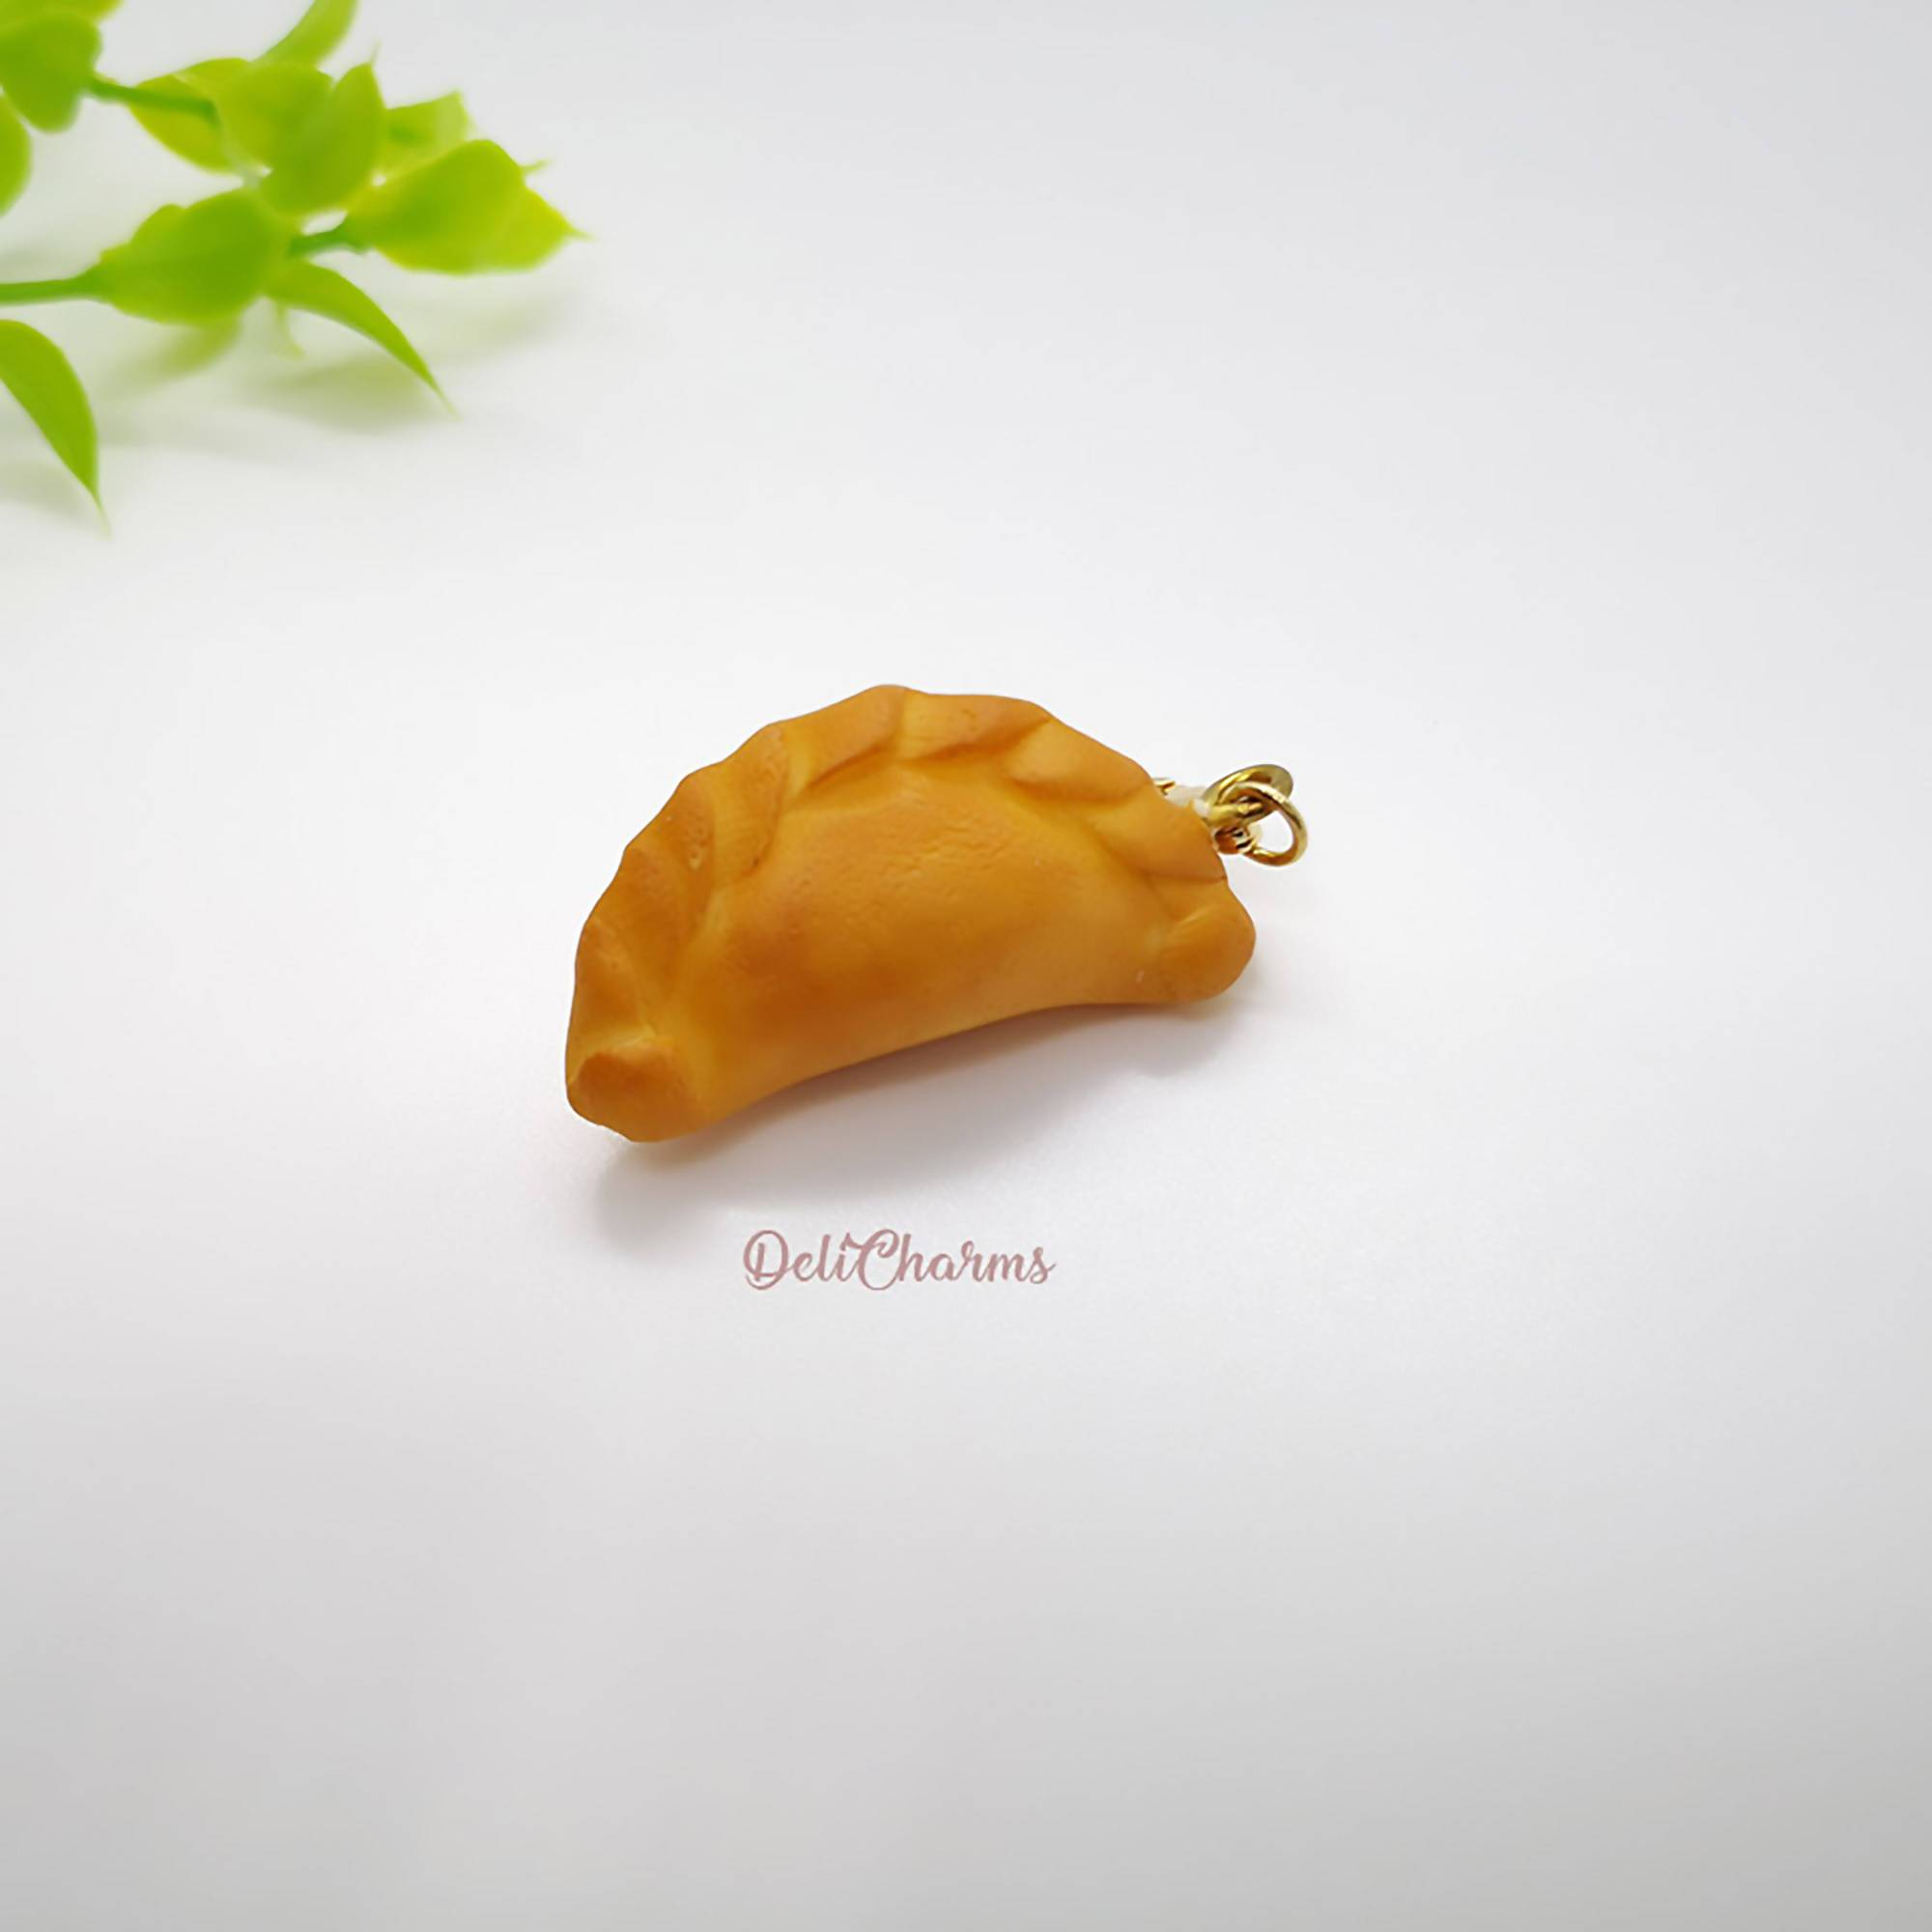 Miniature Curry Puff Charm - Charms - Deli Charms - Naiise